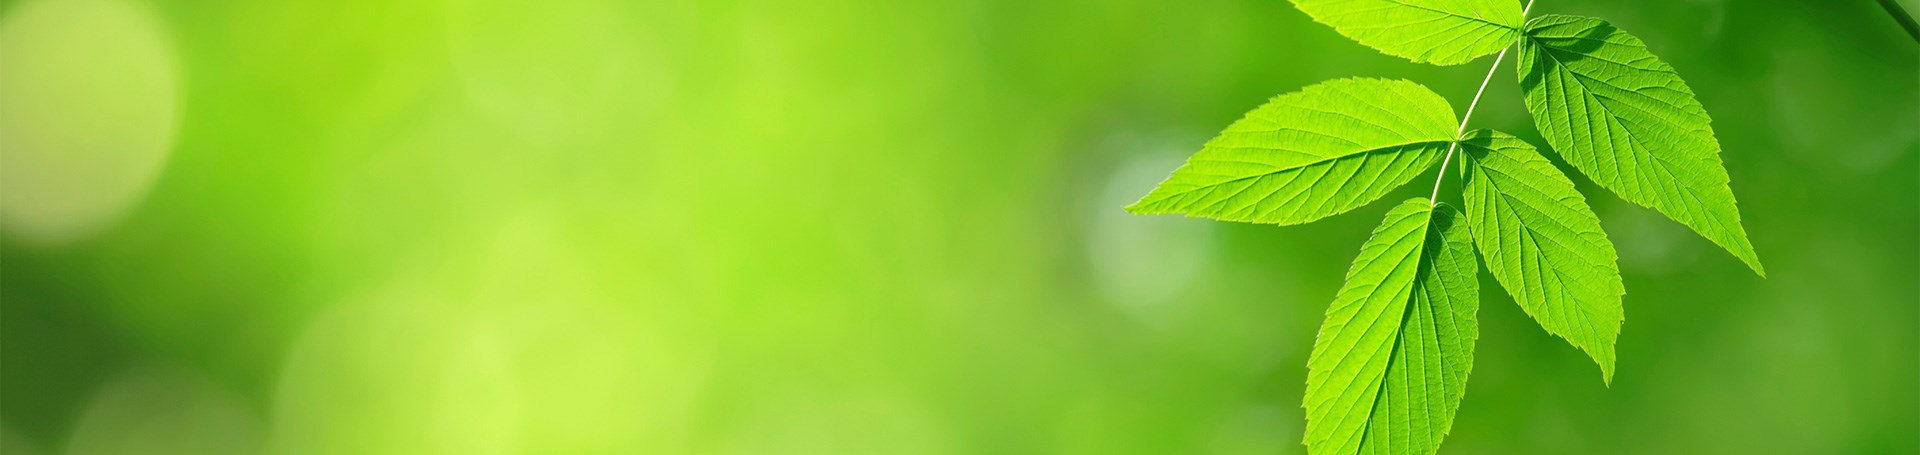 VP_VP_ALL_1920x455_1805_Leaf_Nature_Green.jpg